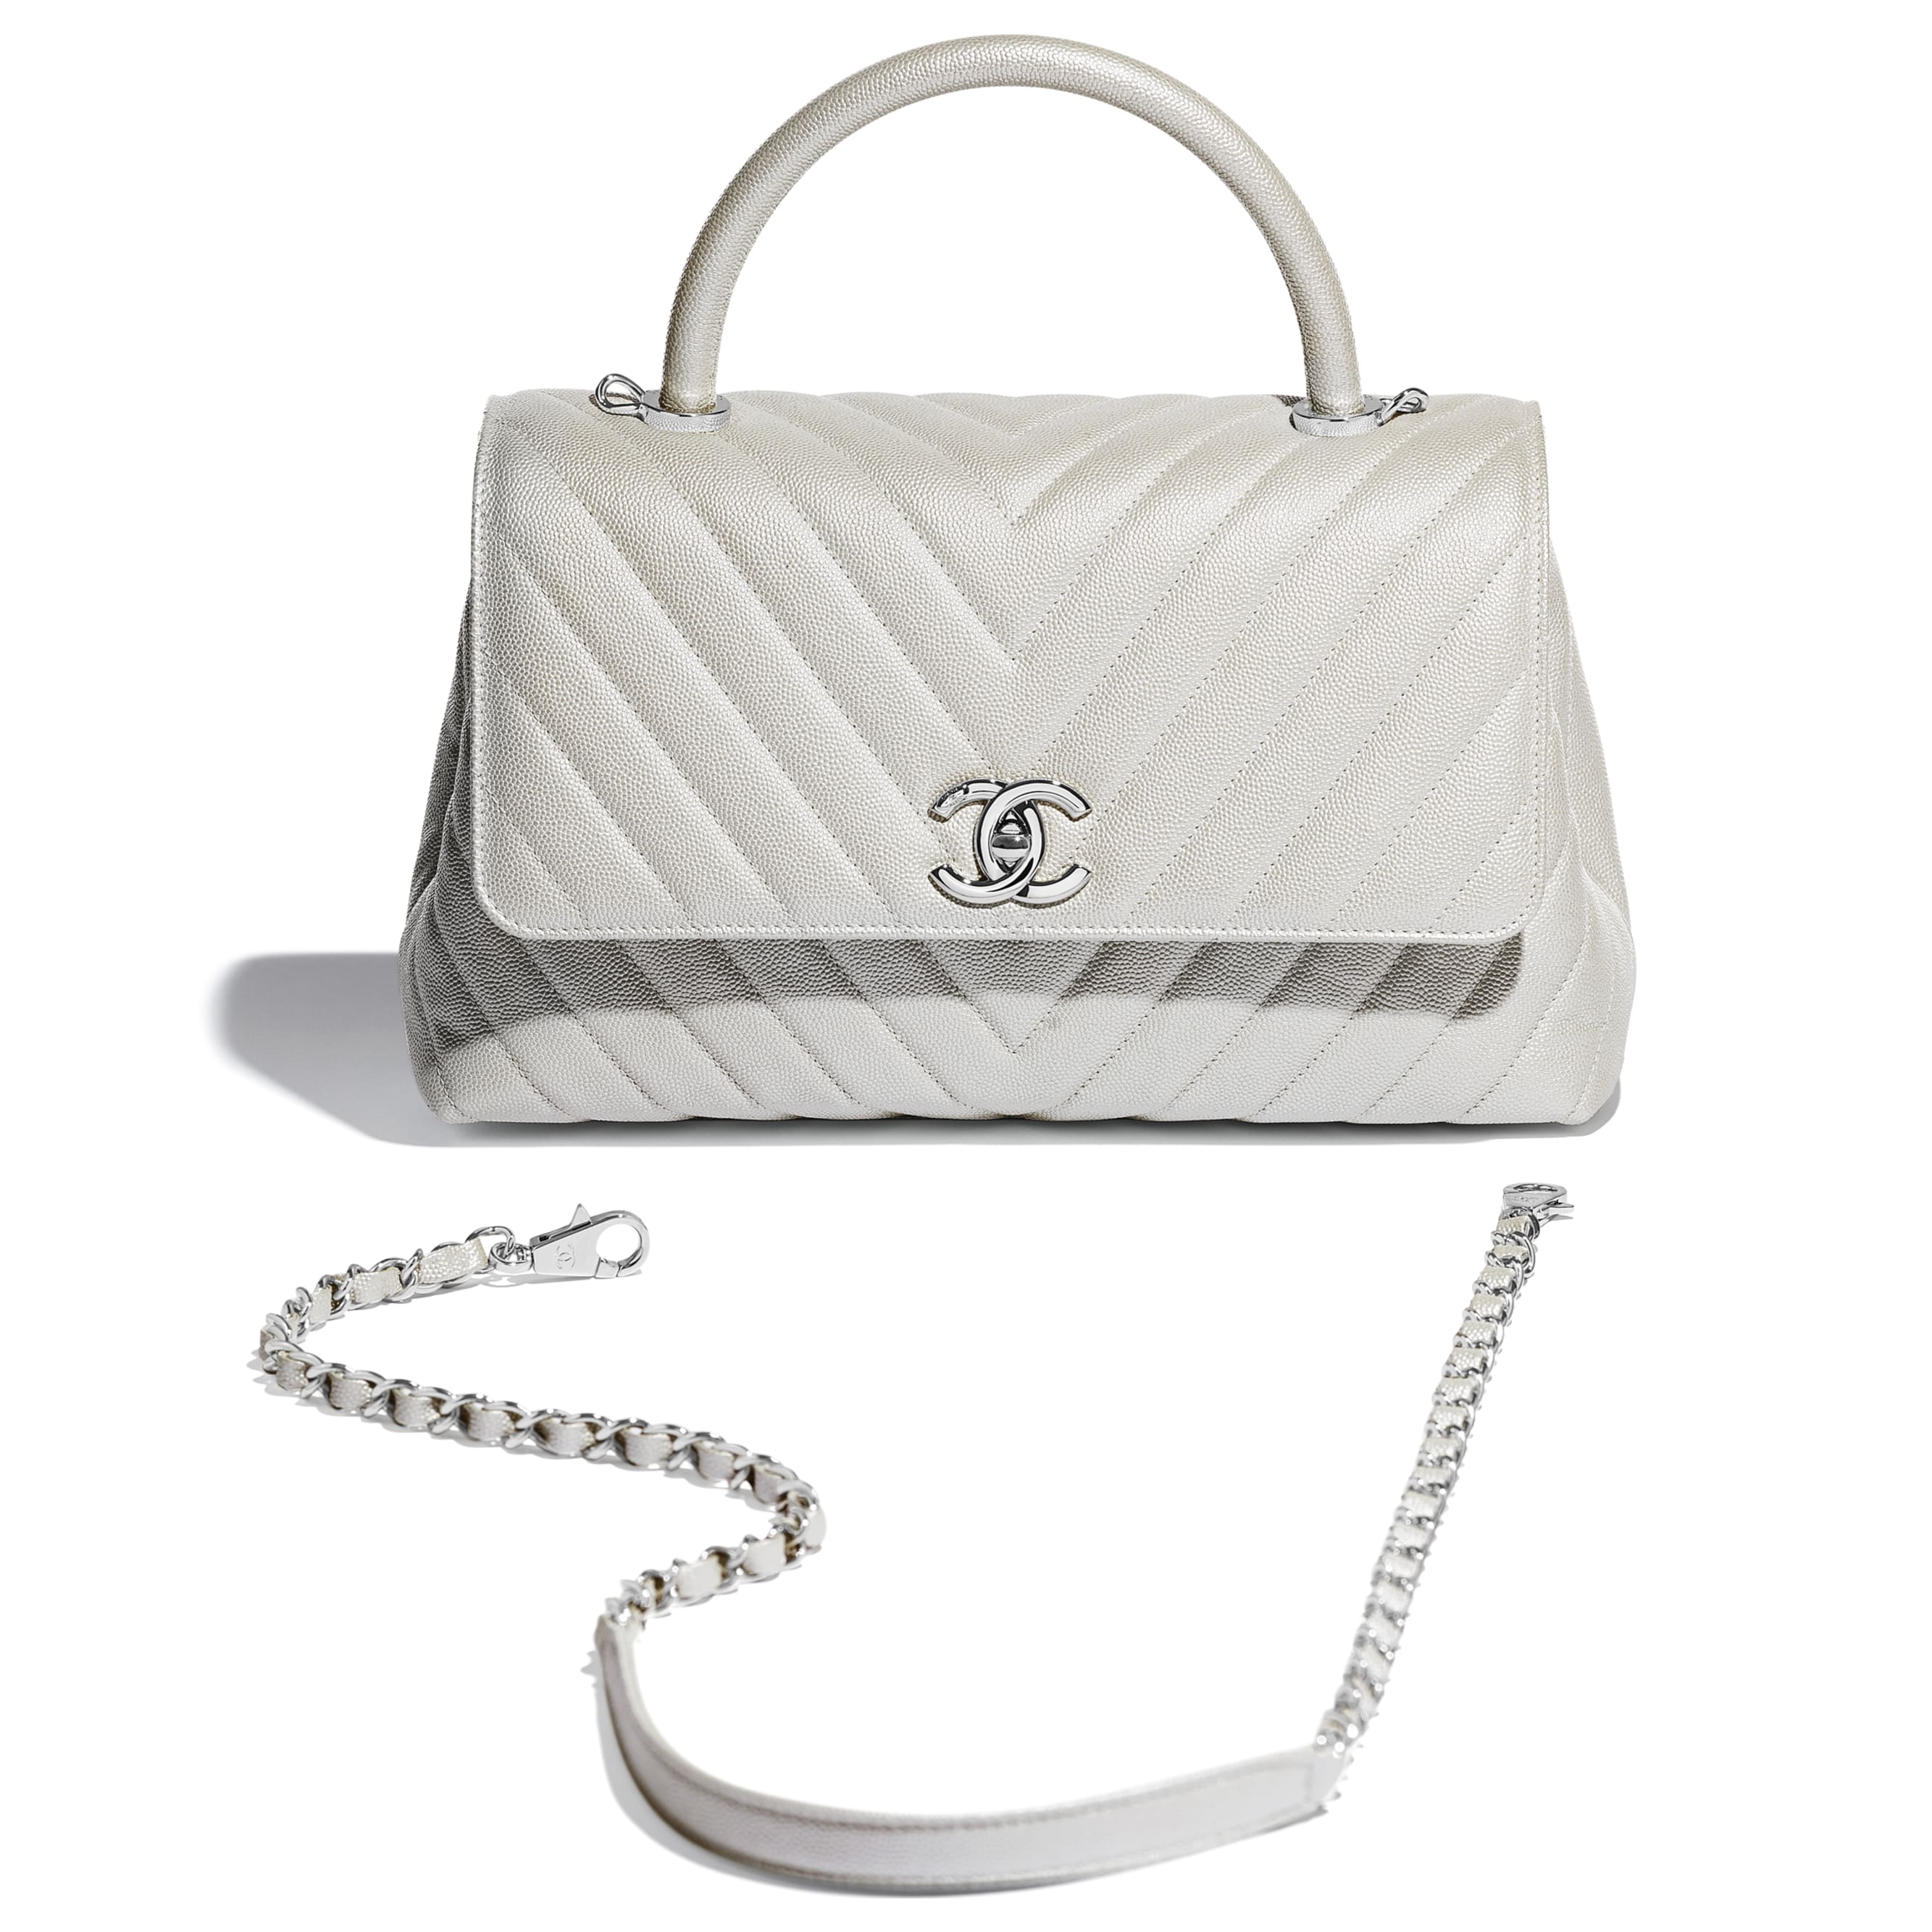 Flap Bag With Top Handle - White - Iridescent Grained Calfskin & Silver-Tone Metal - Extra view - see standard sized version